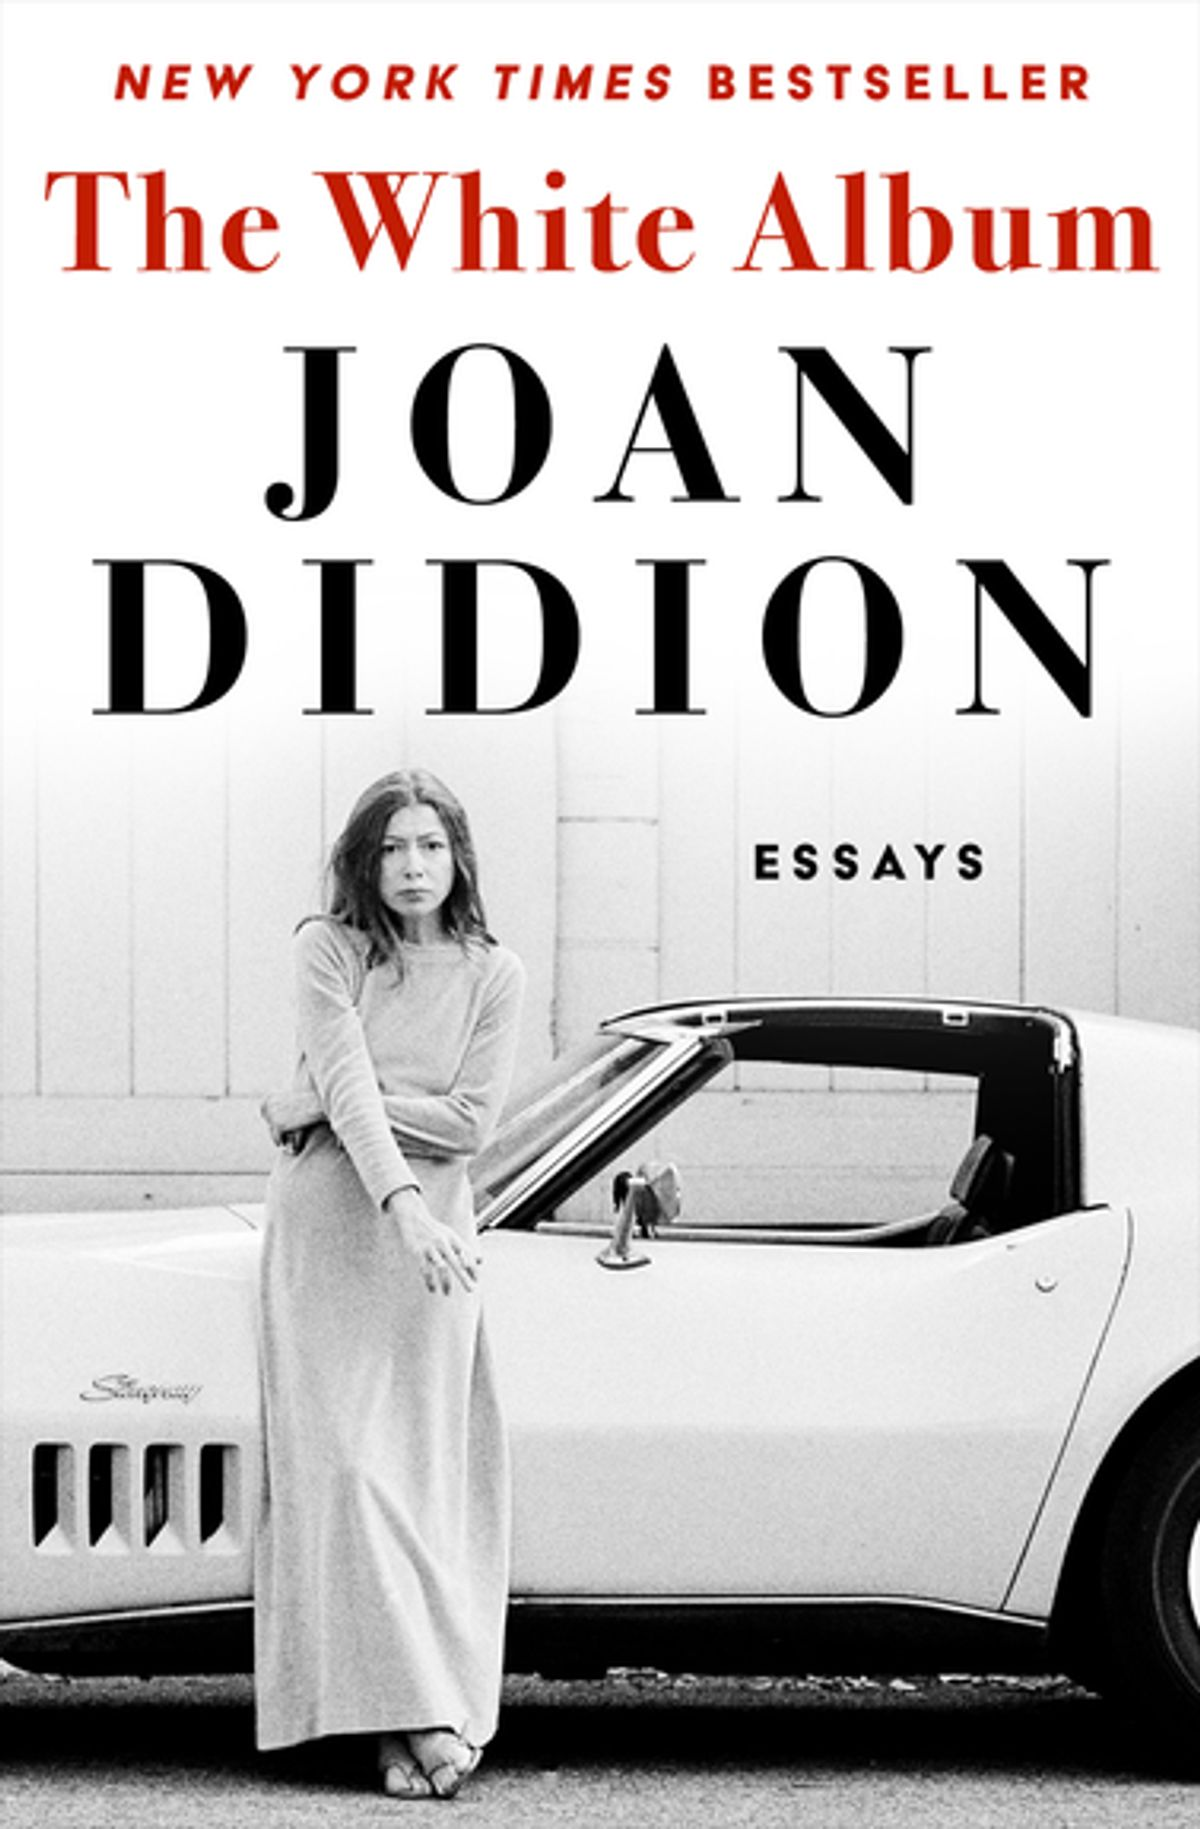 026 The White Album Essay Example Joan Didion Singular Essays Collections On Santa Ana Winds Amazon Full